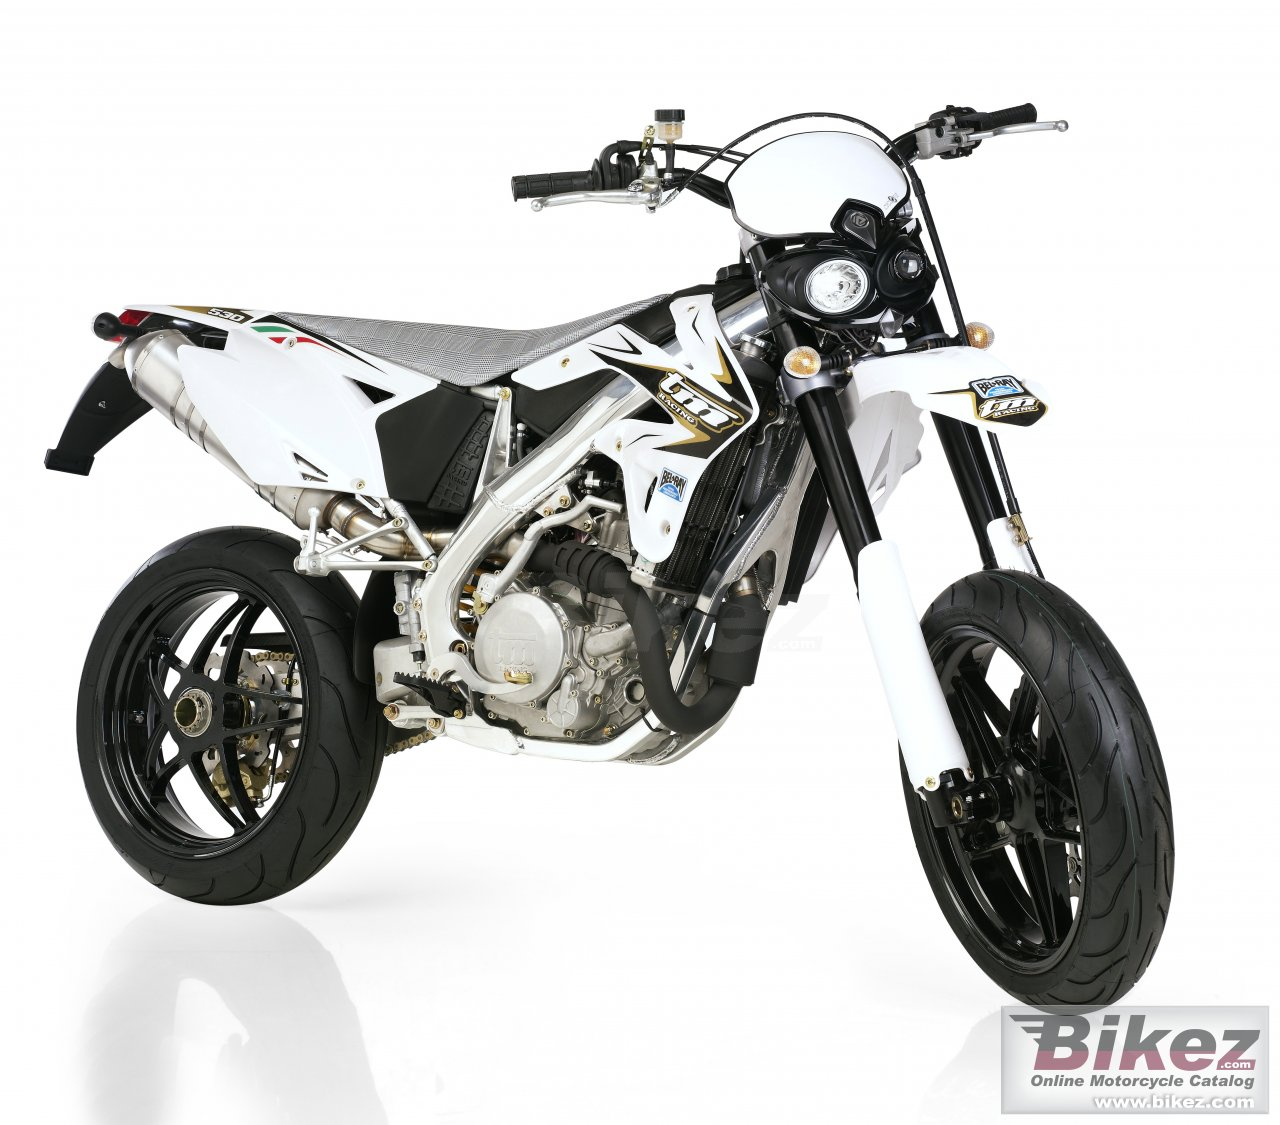 Big TM Racing smm 530f wd picture and wallpaper from Bikez.com